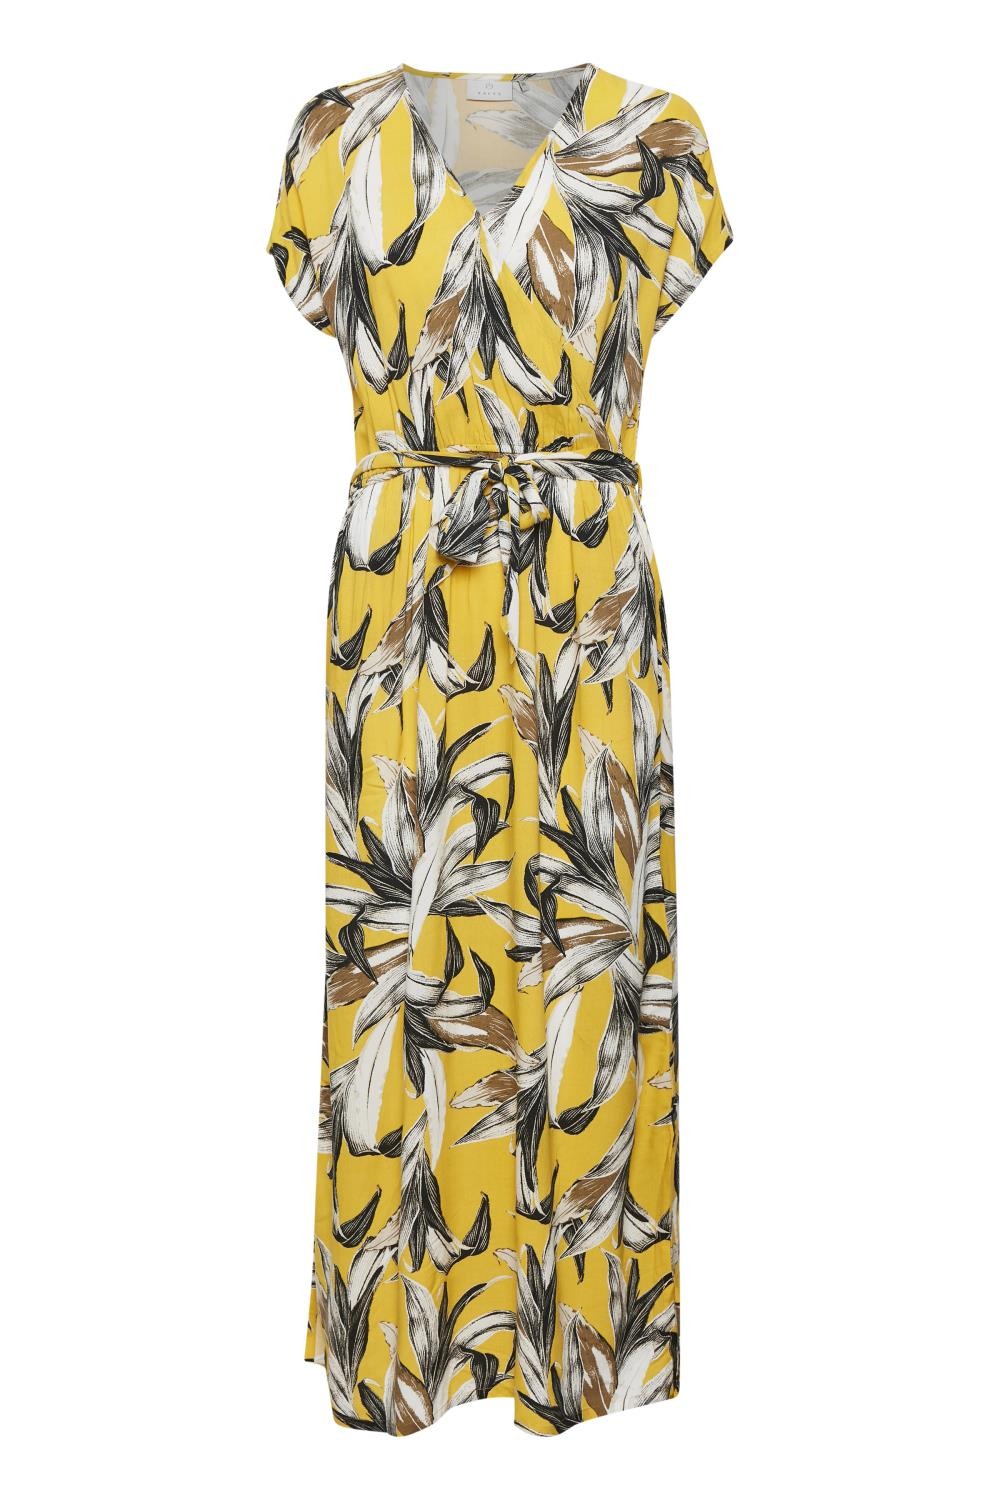 Kaffe Elysse Maxi Dress, golden rod